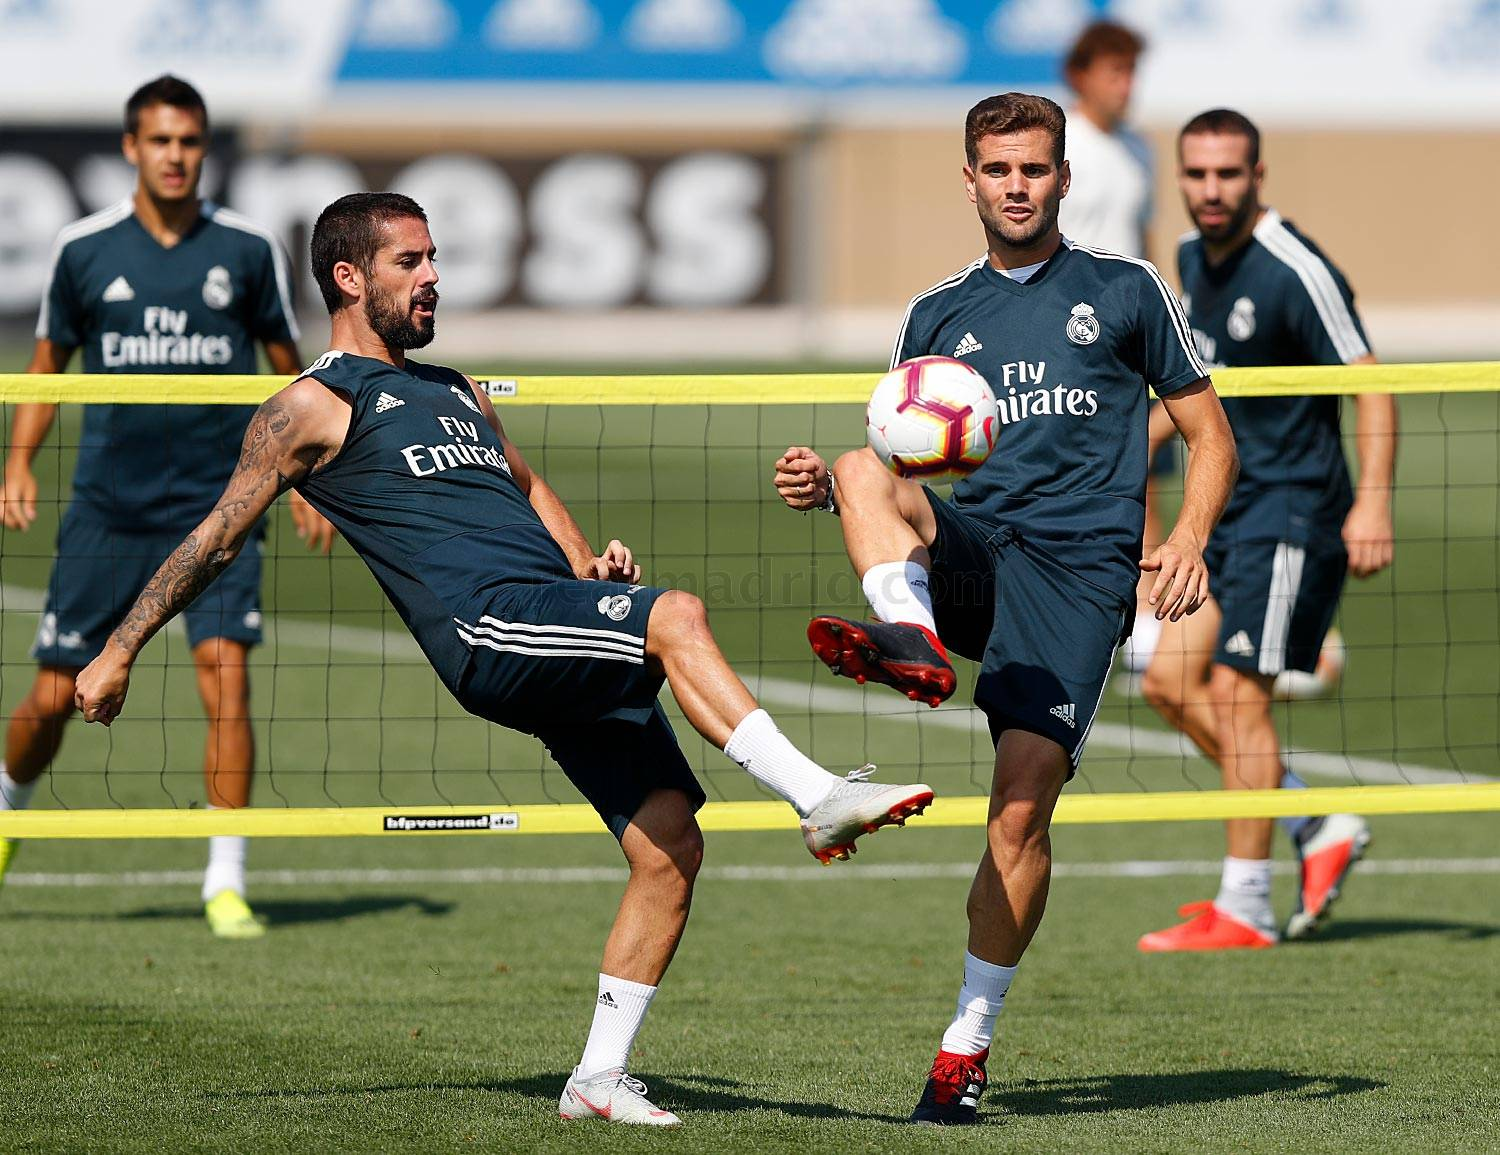 Real Madrid - Entrenamiento del Real Madrid - 24-08-2018